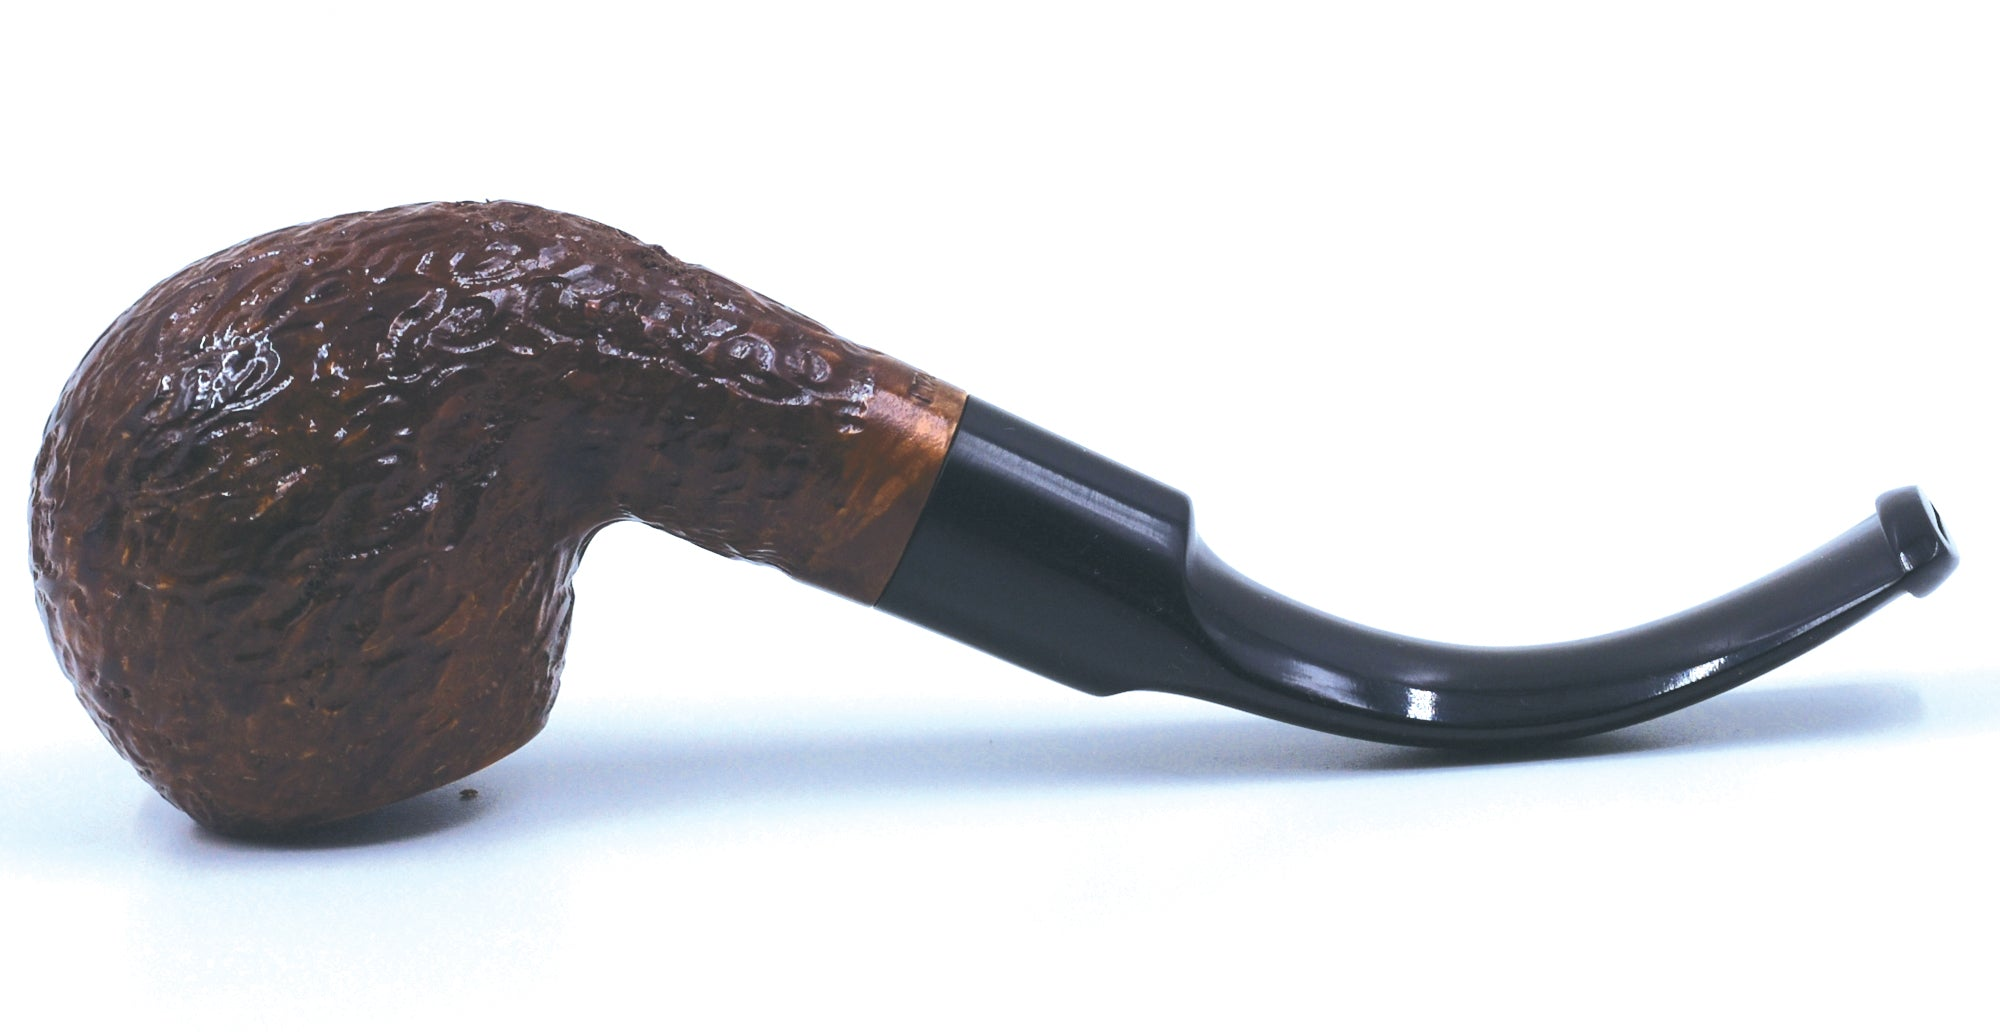 LEGENDEX® SCALADI* 6 MM Filtered Briar Smoking Pipe Made In Italy 01-08-112